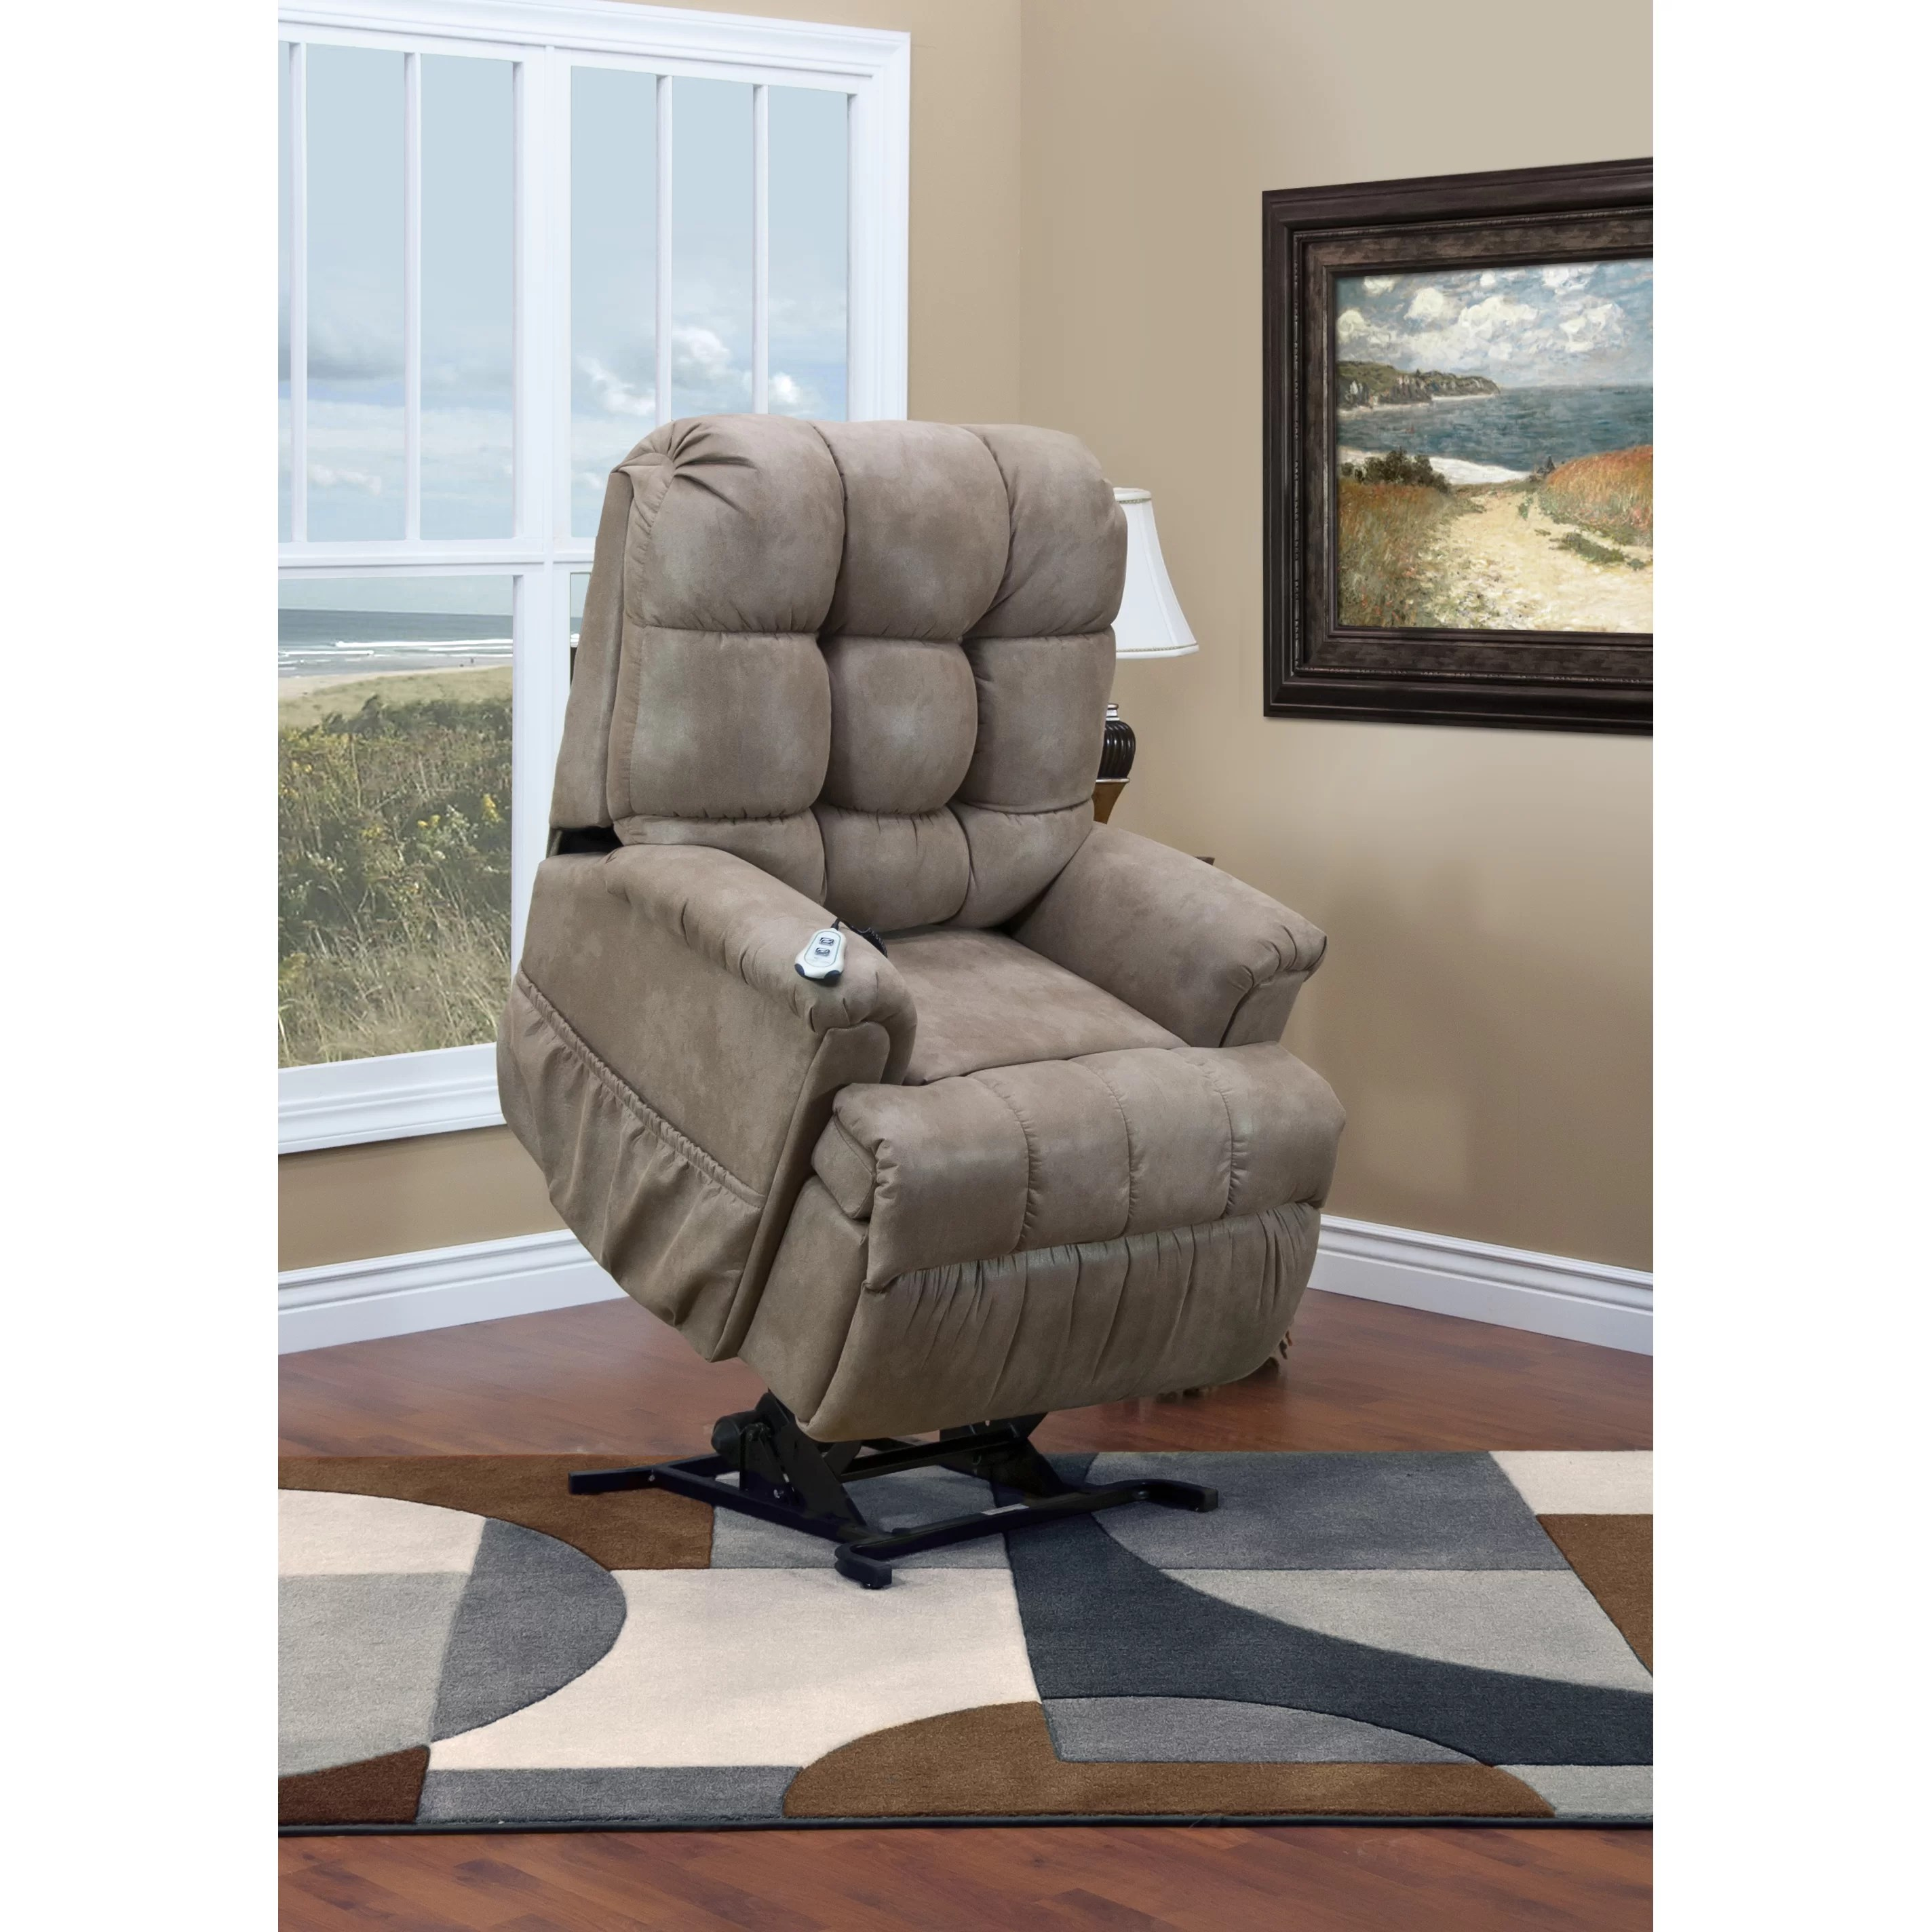 Med Lift Chairs Med Lift 5500 Series Petite Wall A Way Reclining Lift